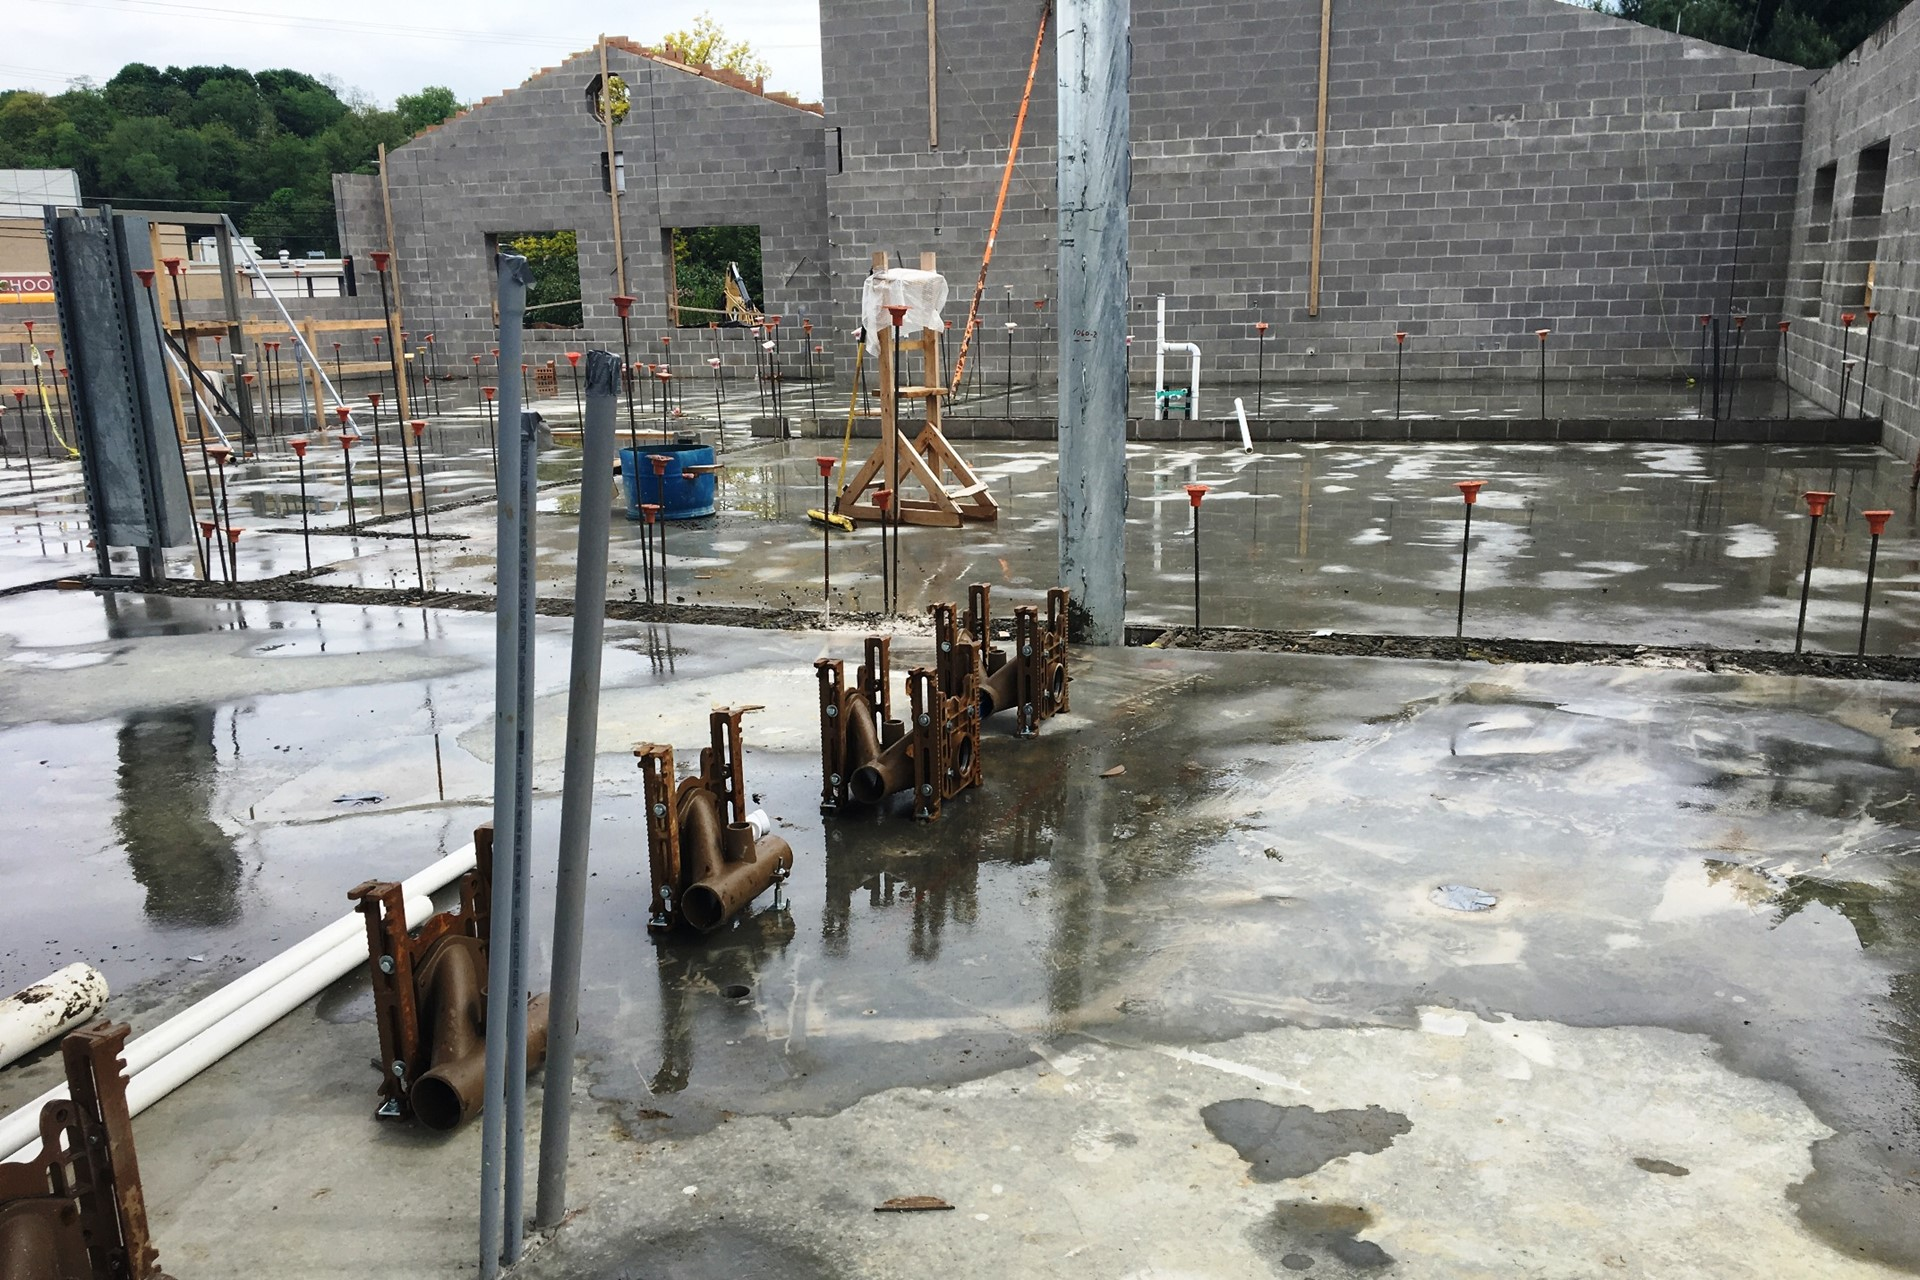 New school construction site: Concrete floor base